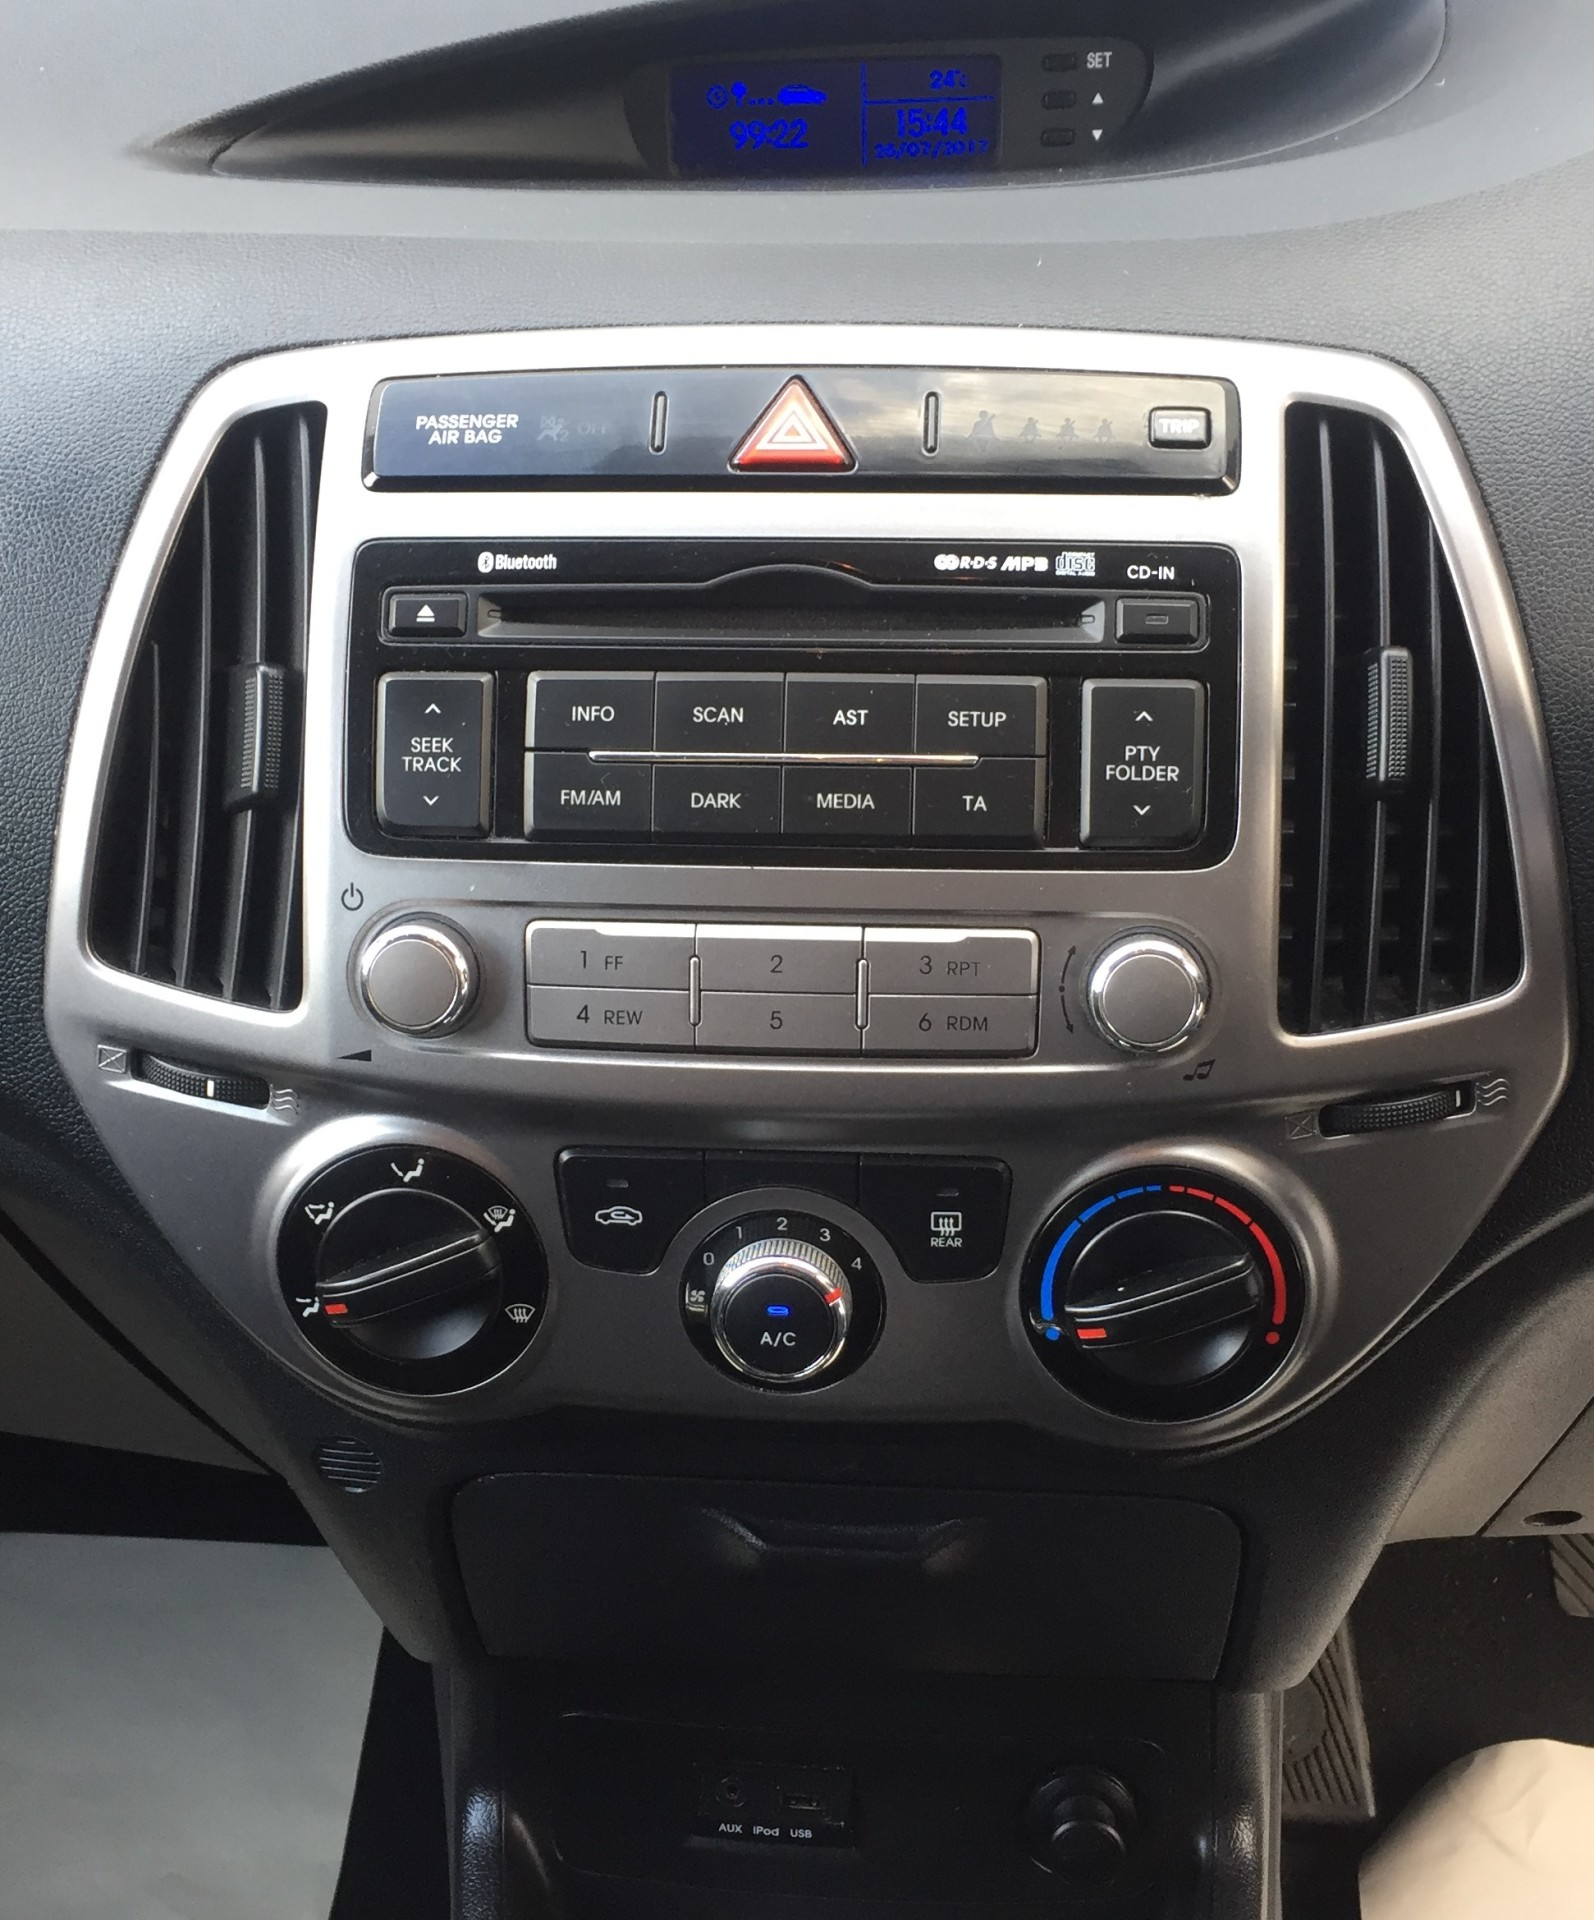 USB/AUX/CD Player